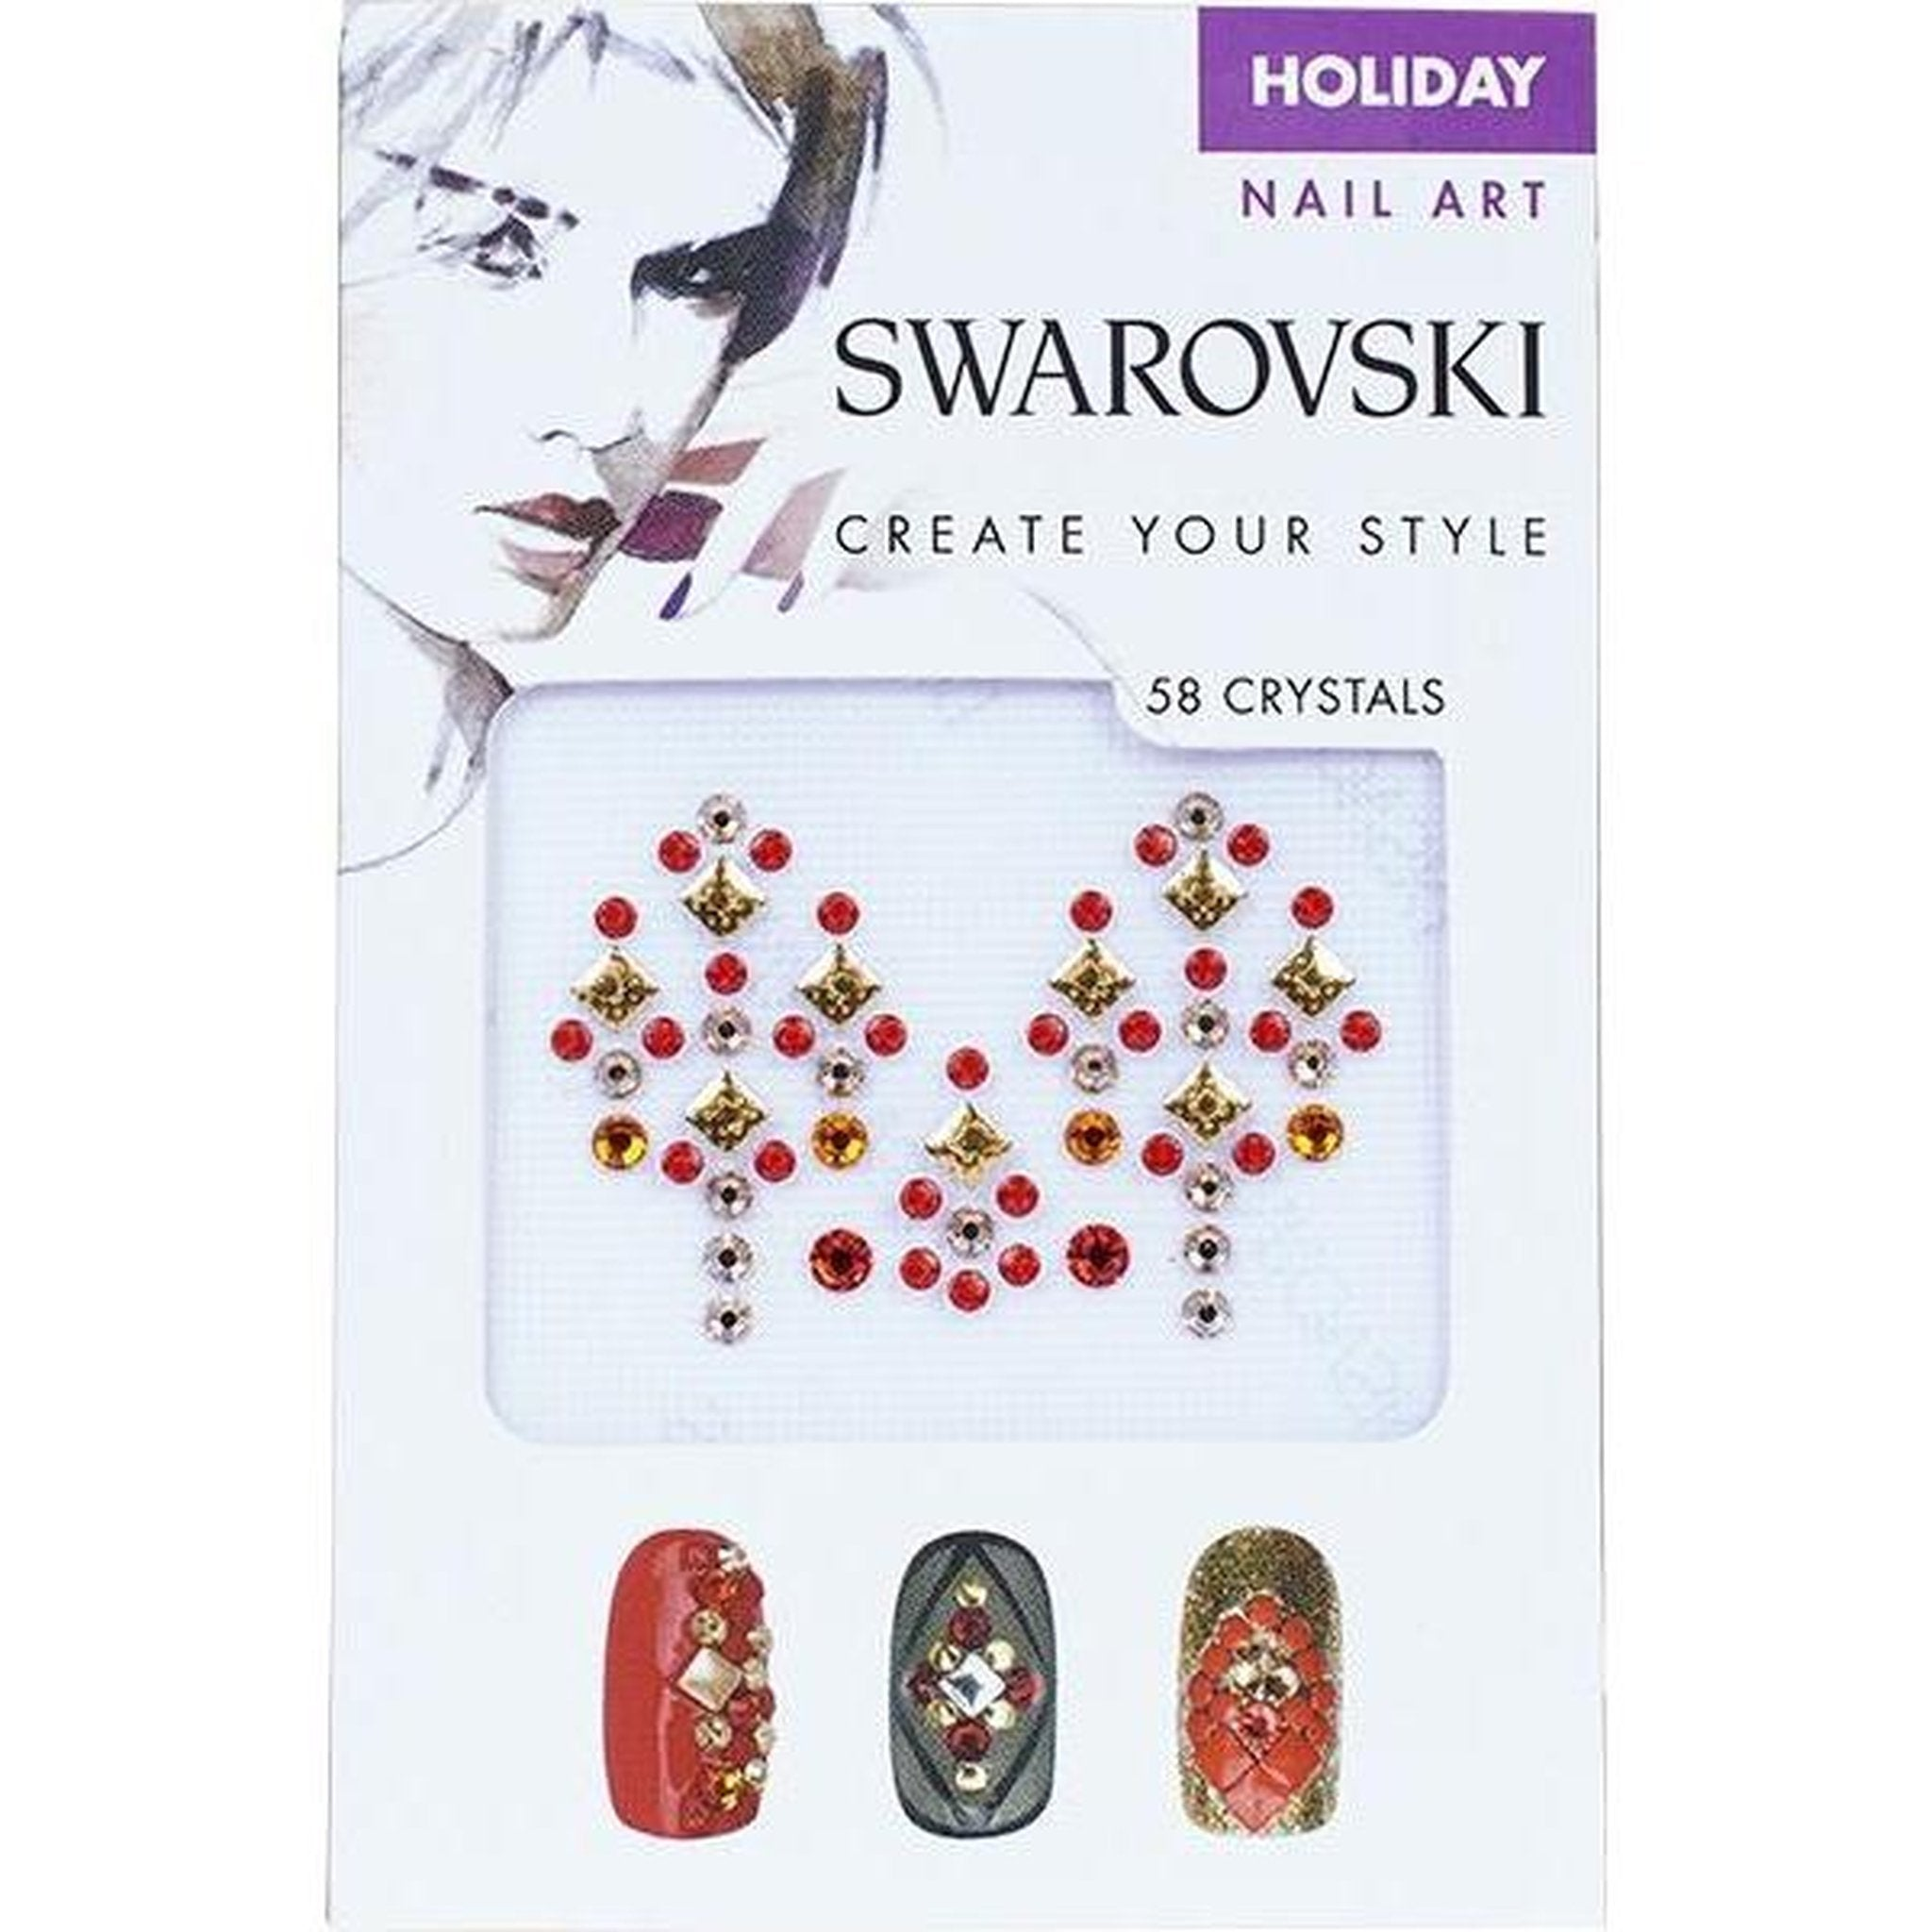 SWAROVSKI NAIL ART CRYSTAL TRANSFERS - HOLIDAY SET 2-Gel Essentialz